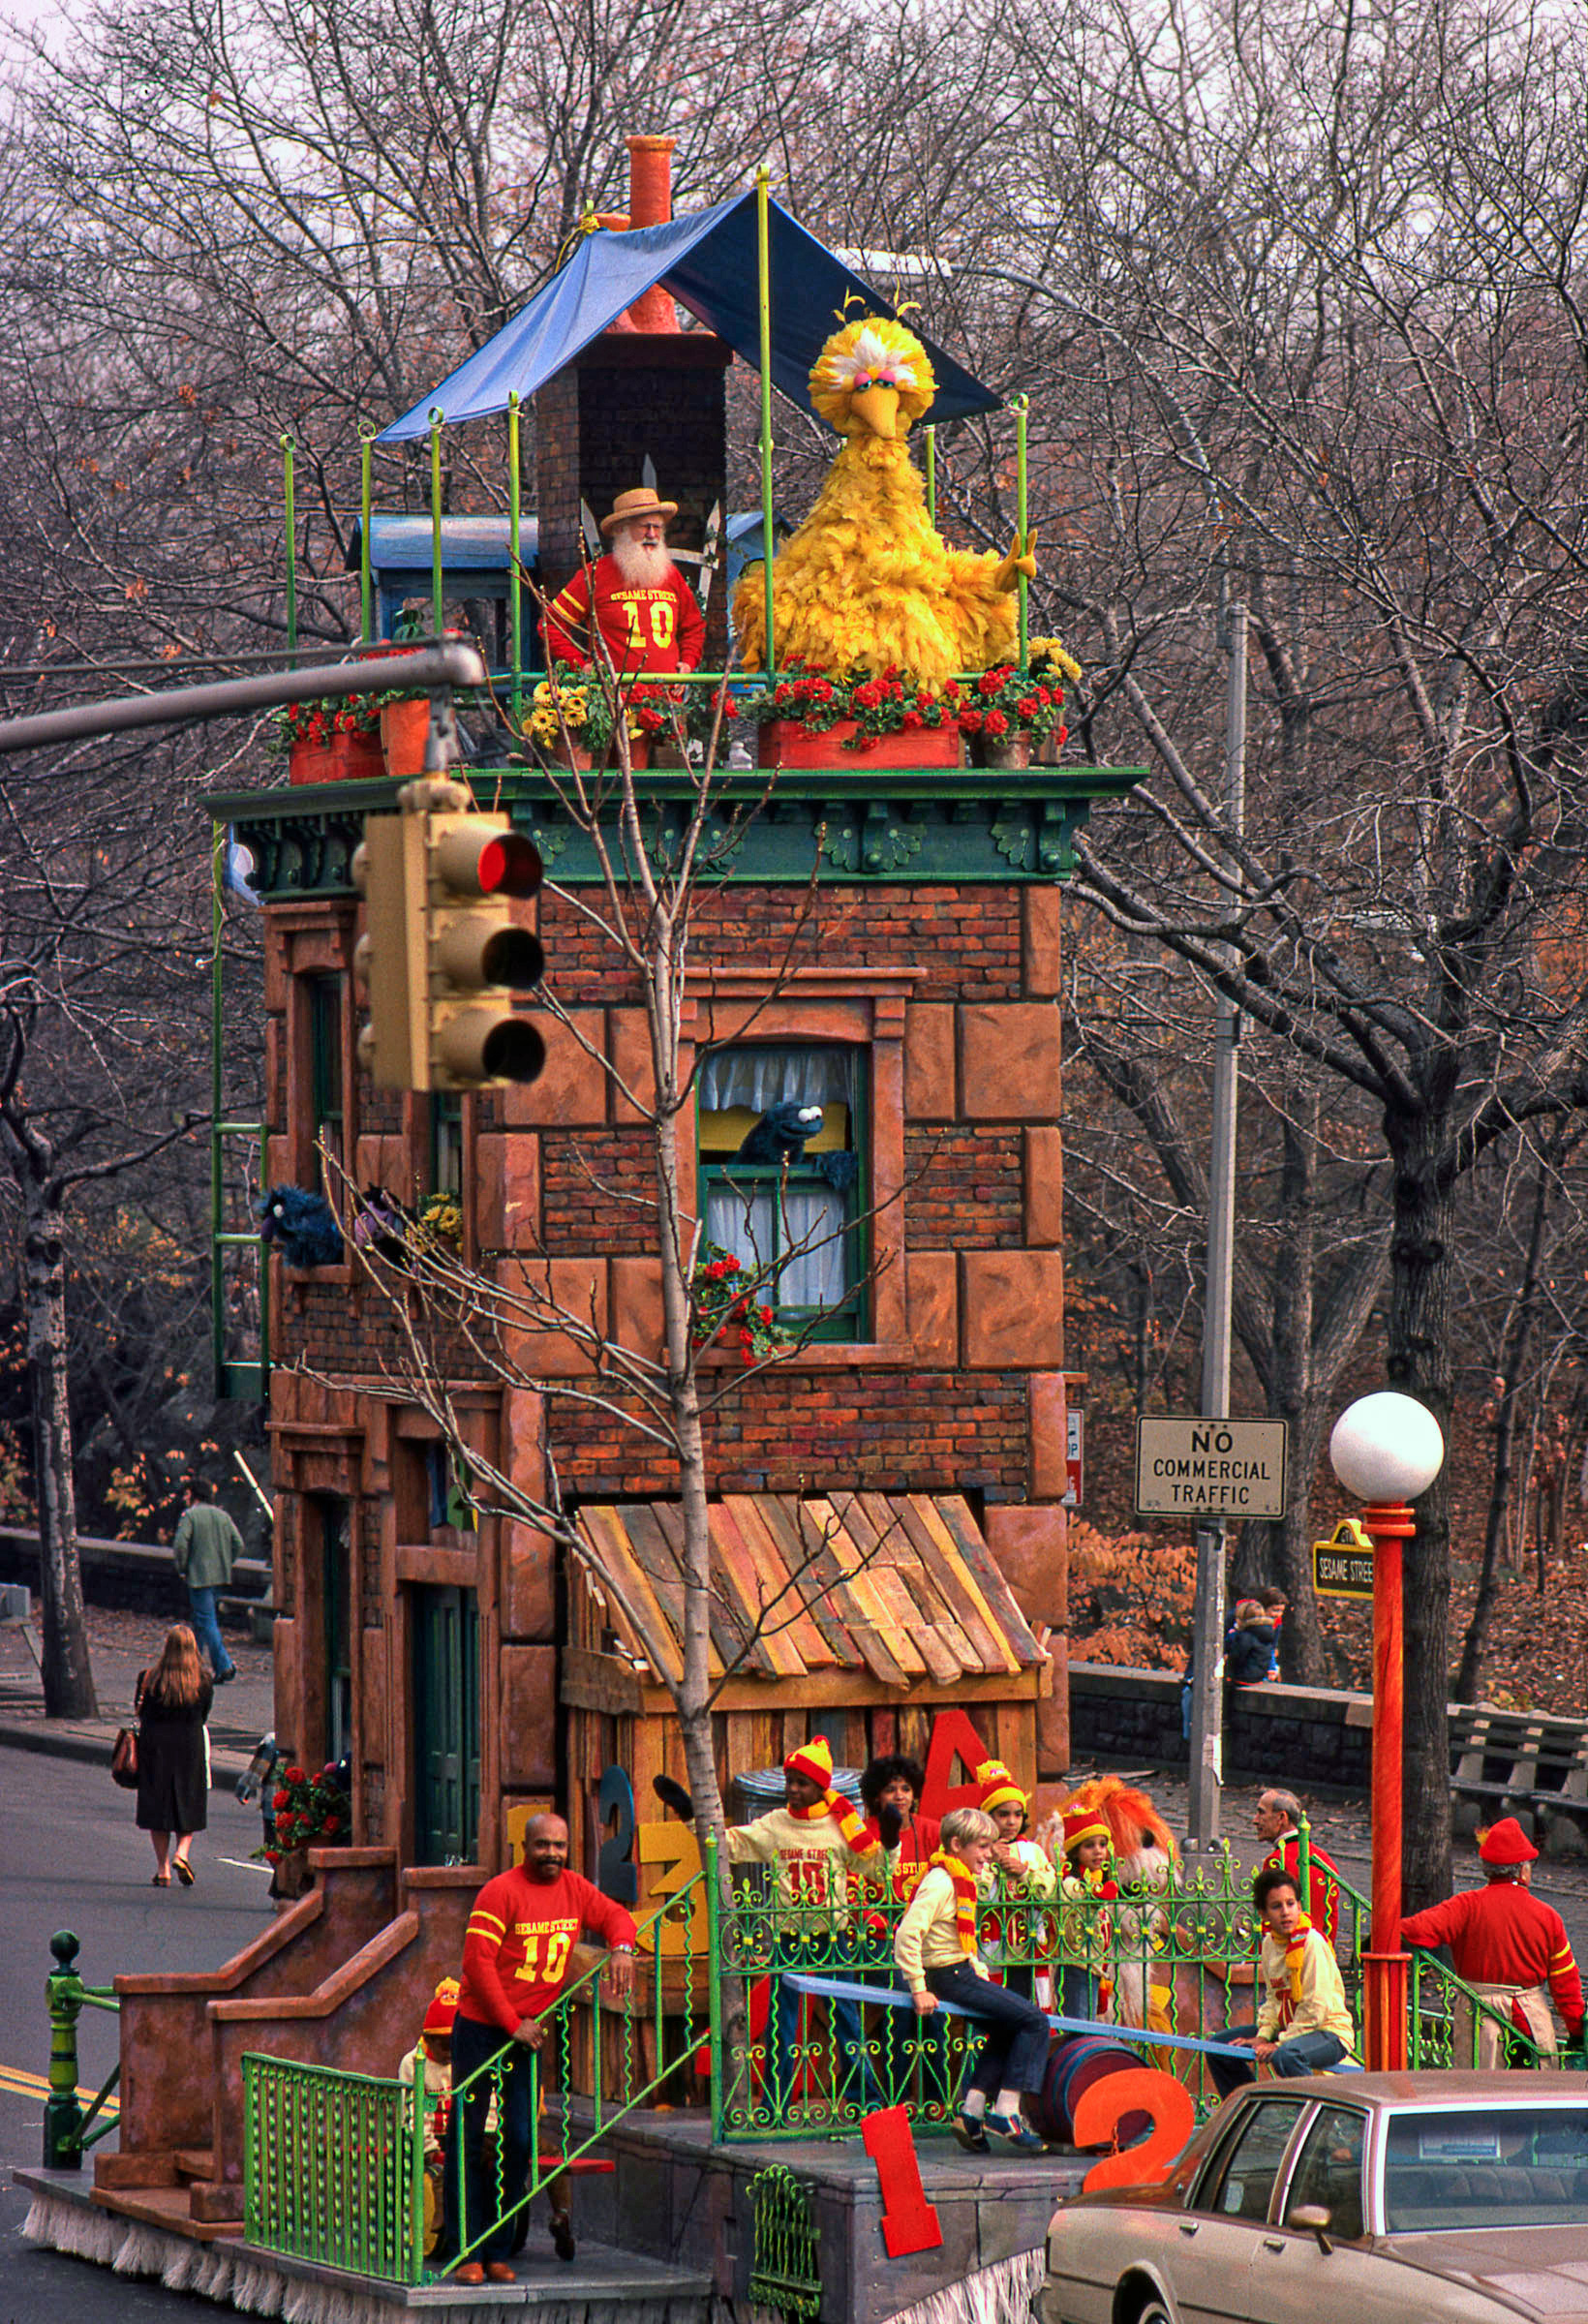 Macy's Thanksgiving Day Parade | Muppet Wiki | FANDOM powered by Wikia